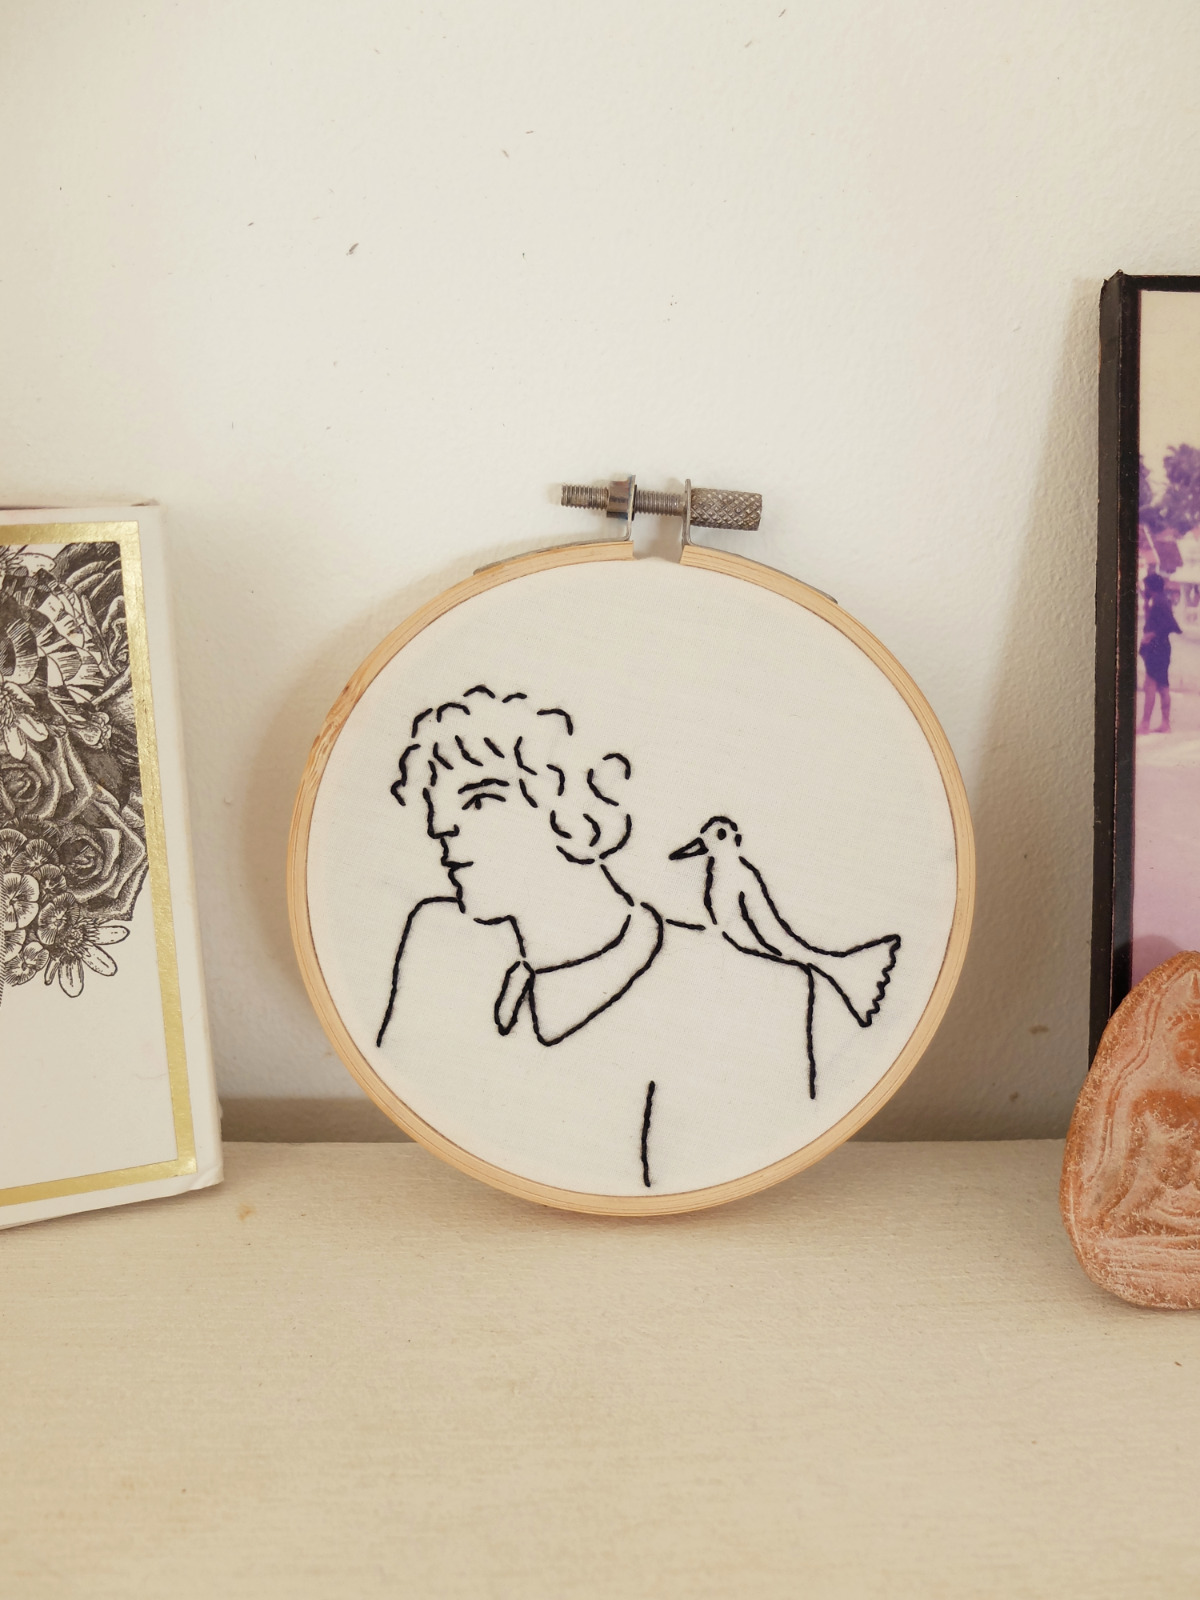 self invented thoughts embroidery